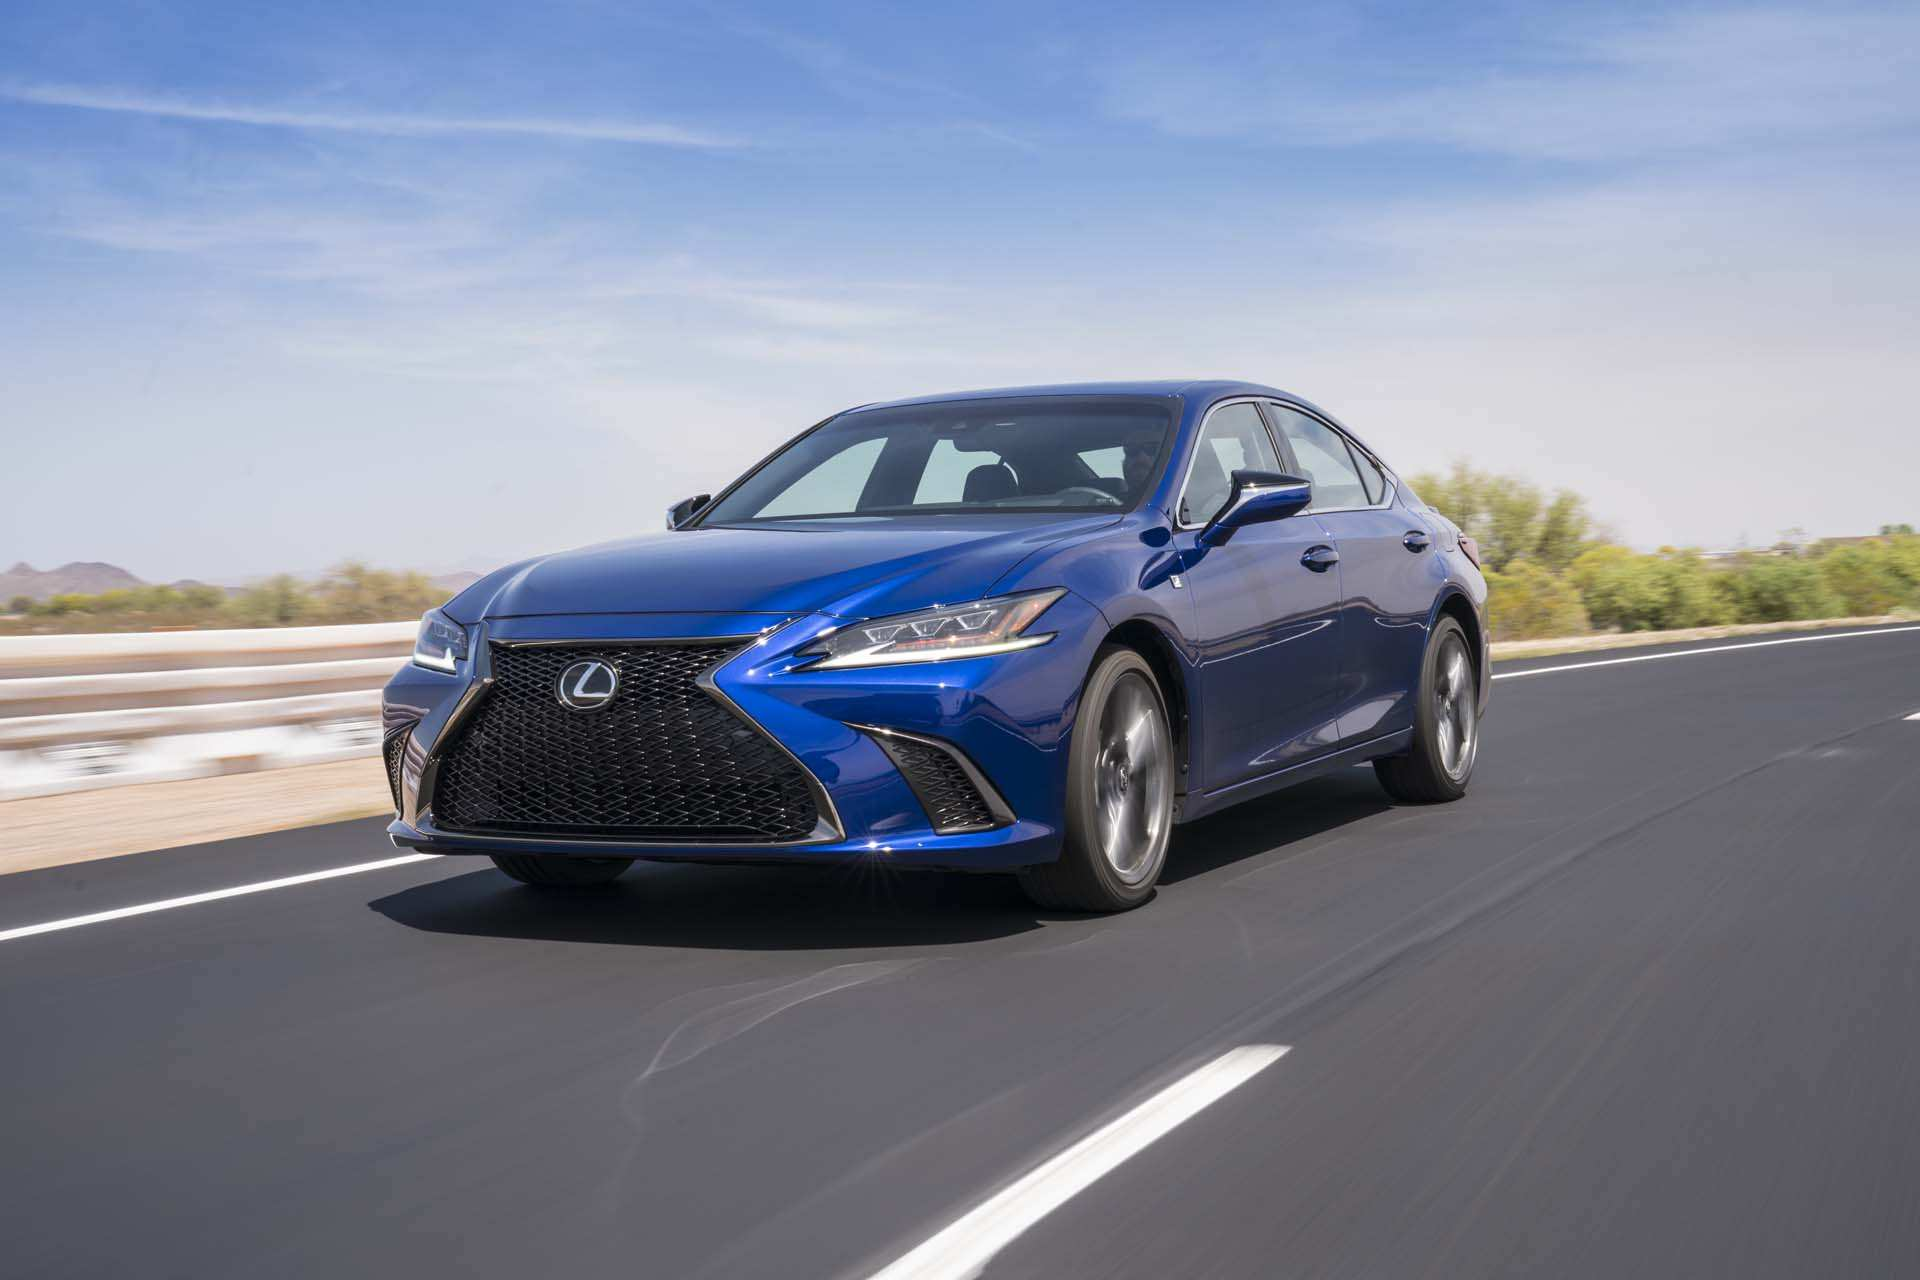 27 All New Lexus Gs 2020 Price And Review